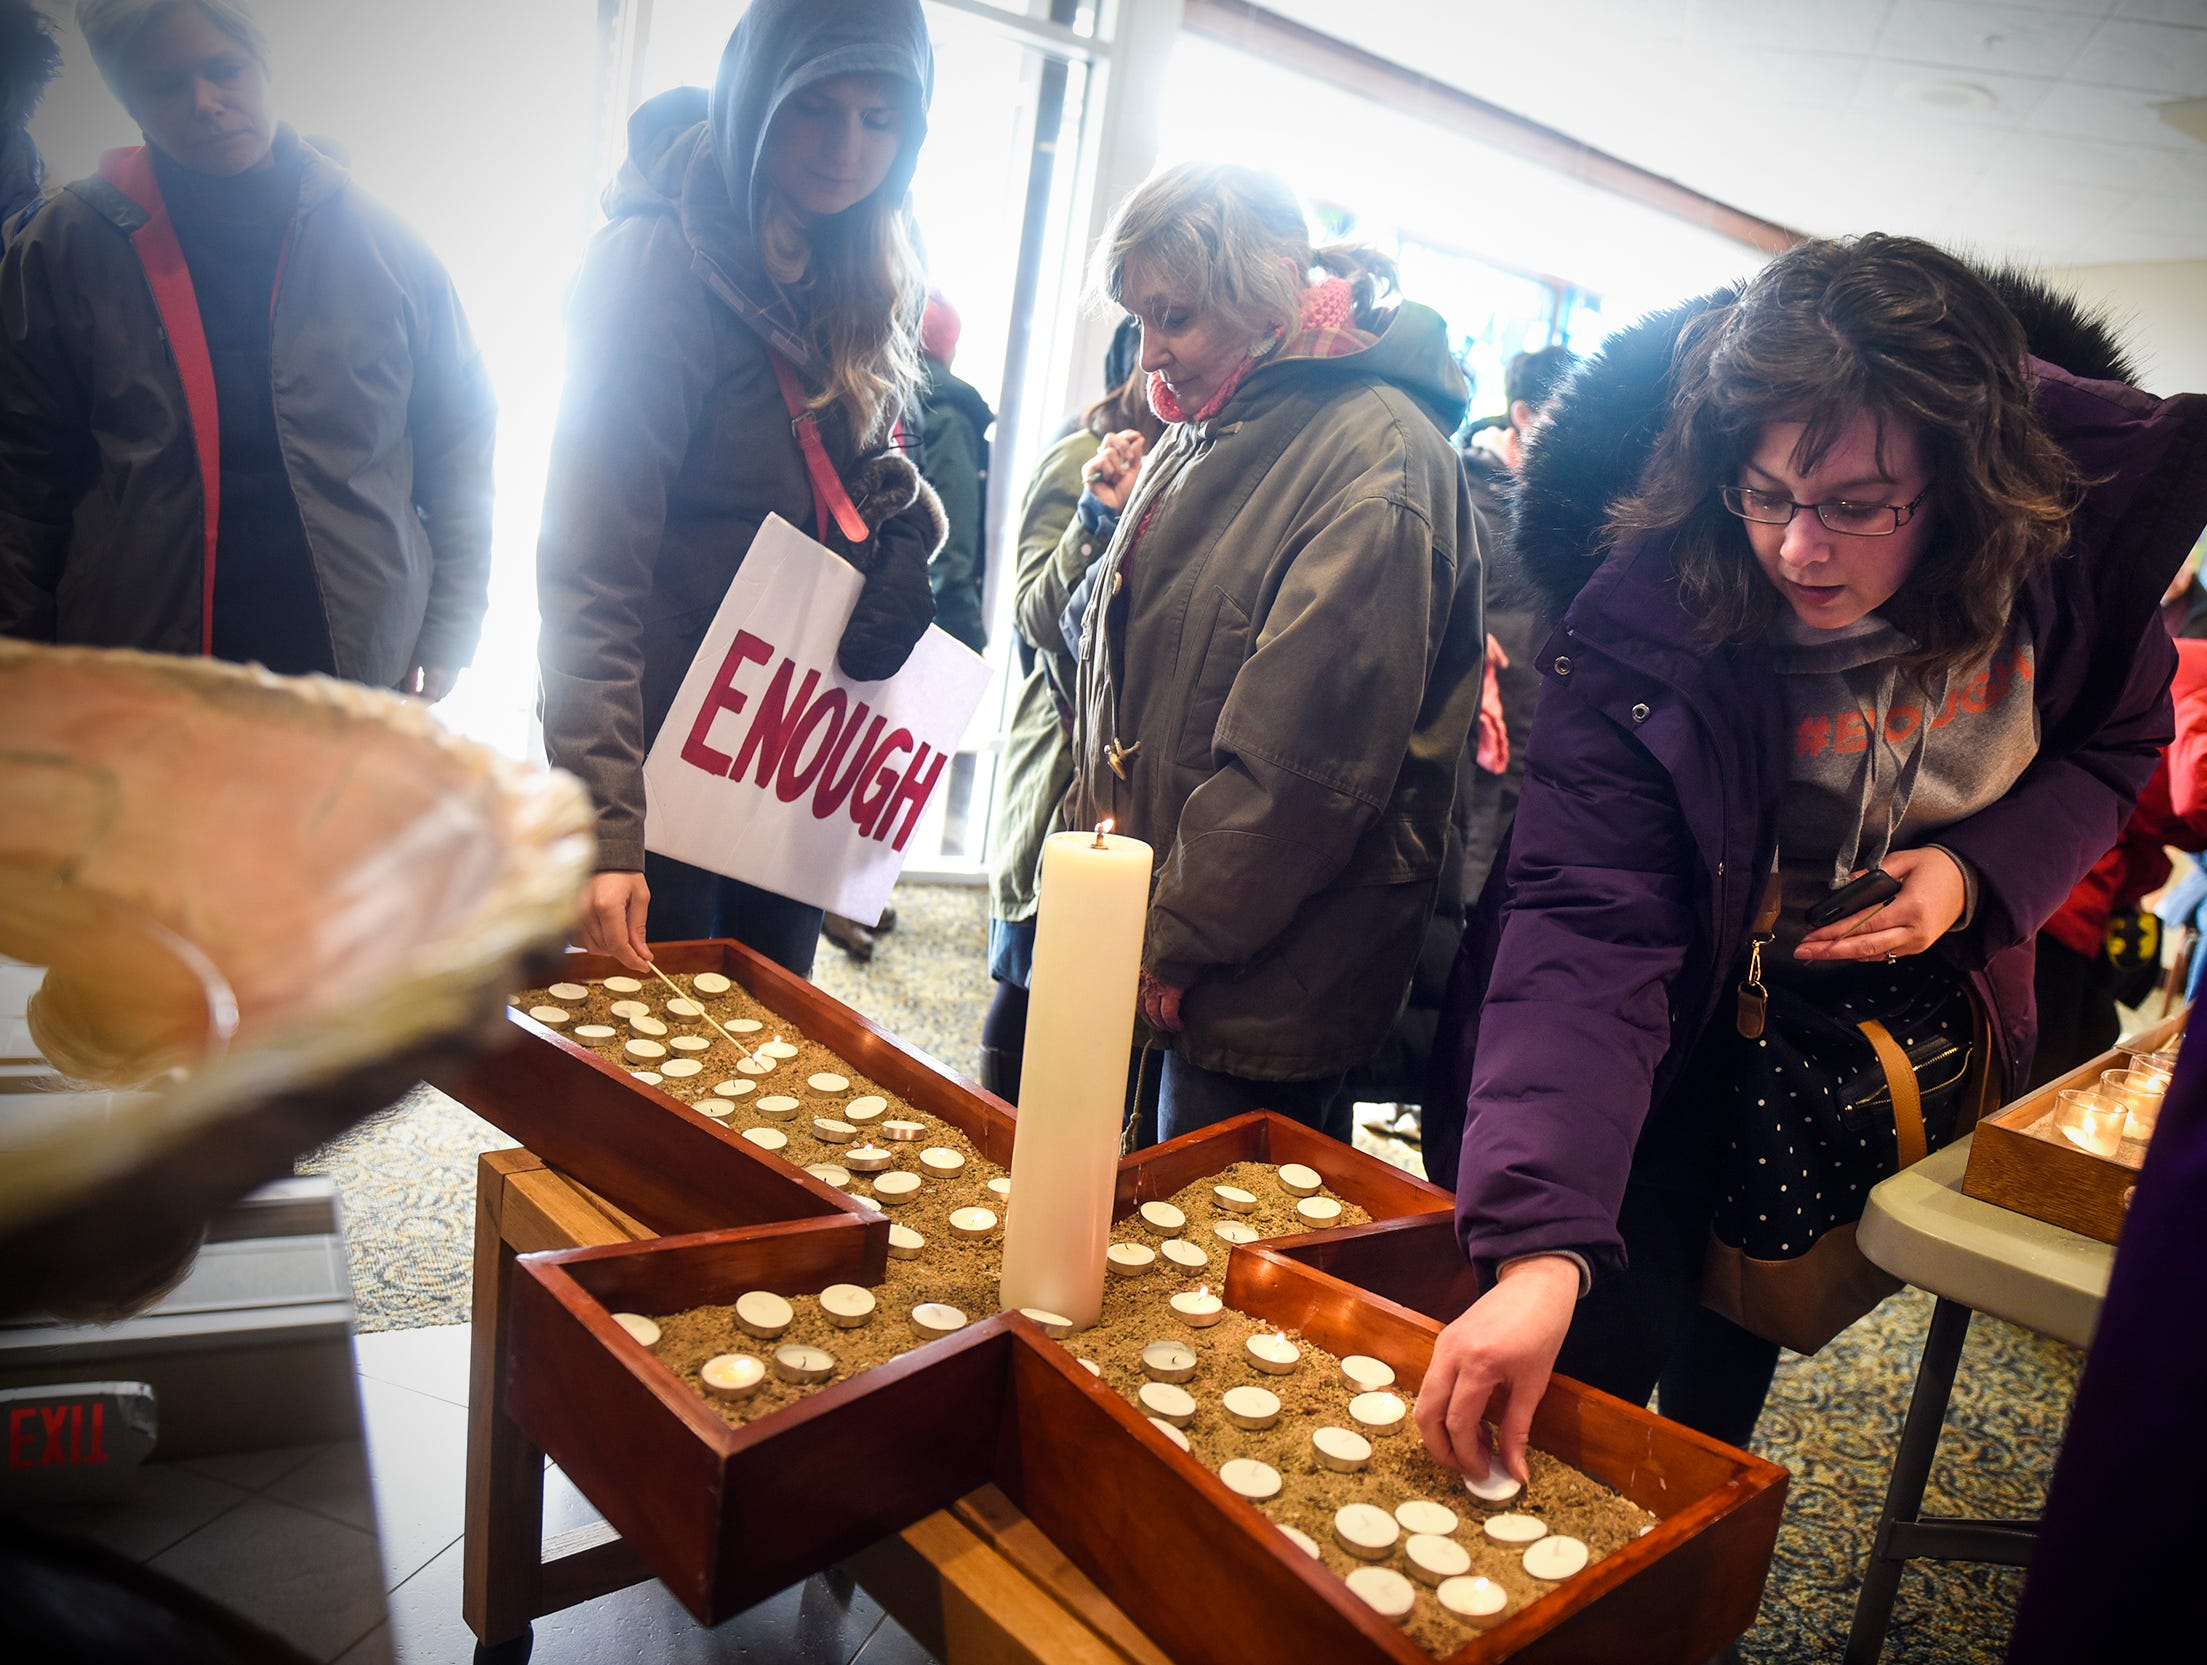 Participants light candles in memory of shooting victims during a  March For Our Lives event  at First United Methodist church Saturday, March 24, in Sartell.